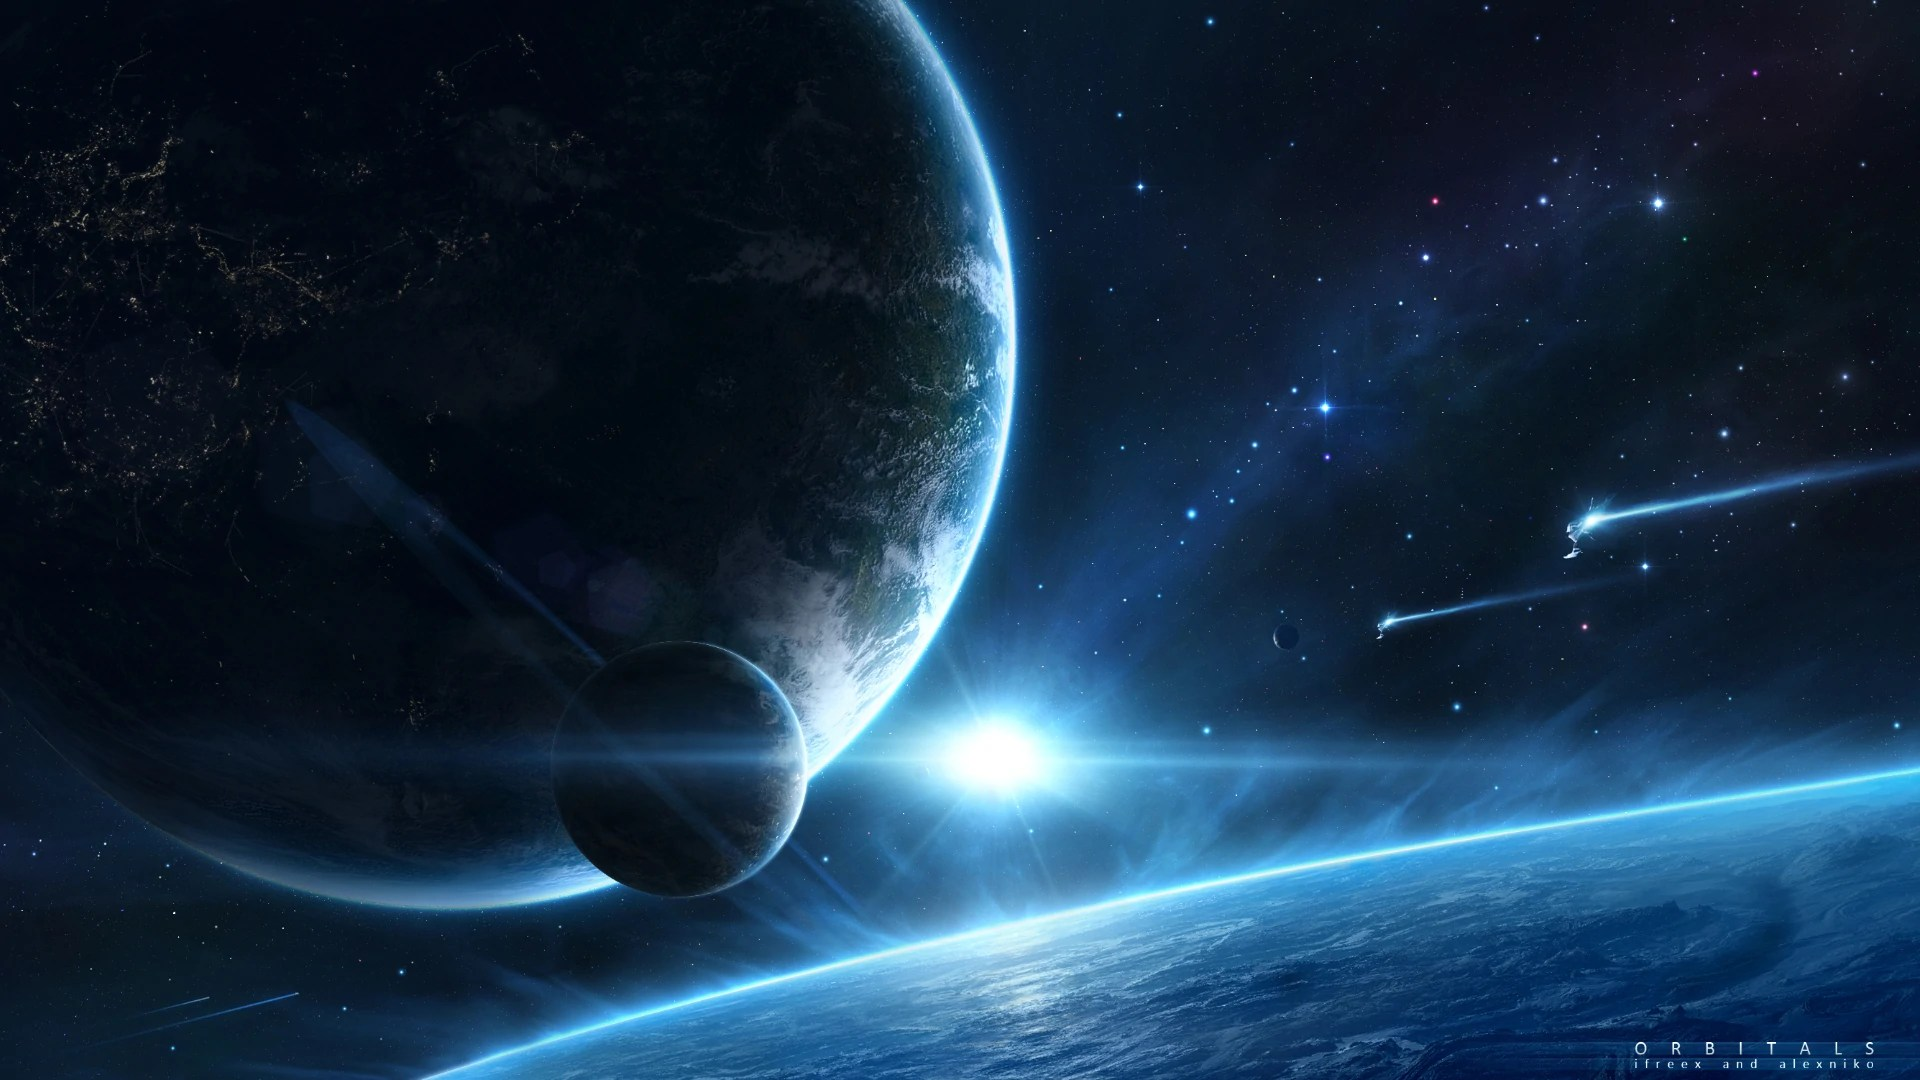 Image - Space Fantasy HD Wallpaper-34 jpg Orbitals 1920x1080.jpg | Sci Fi Mini Builders Wiki ...